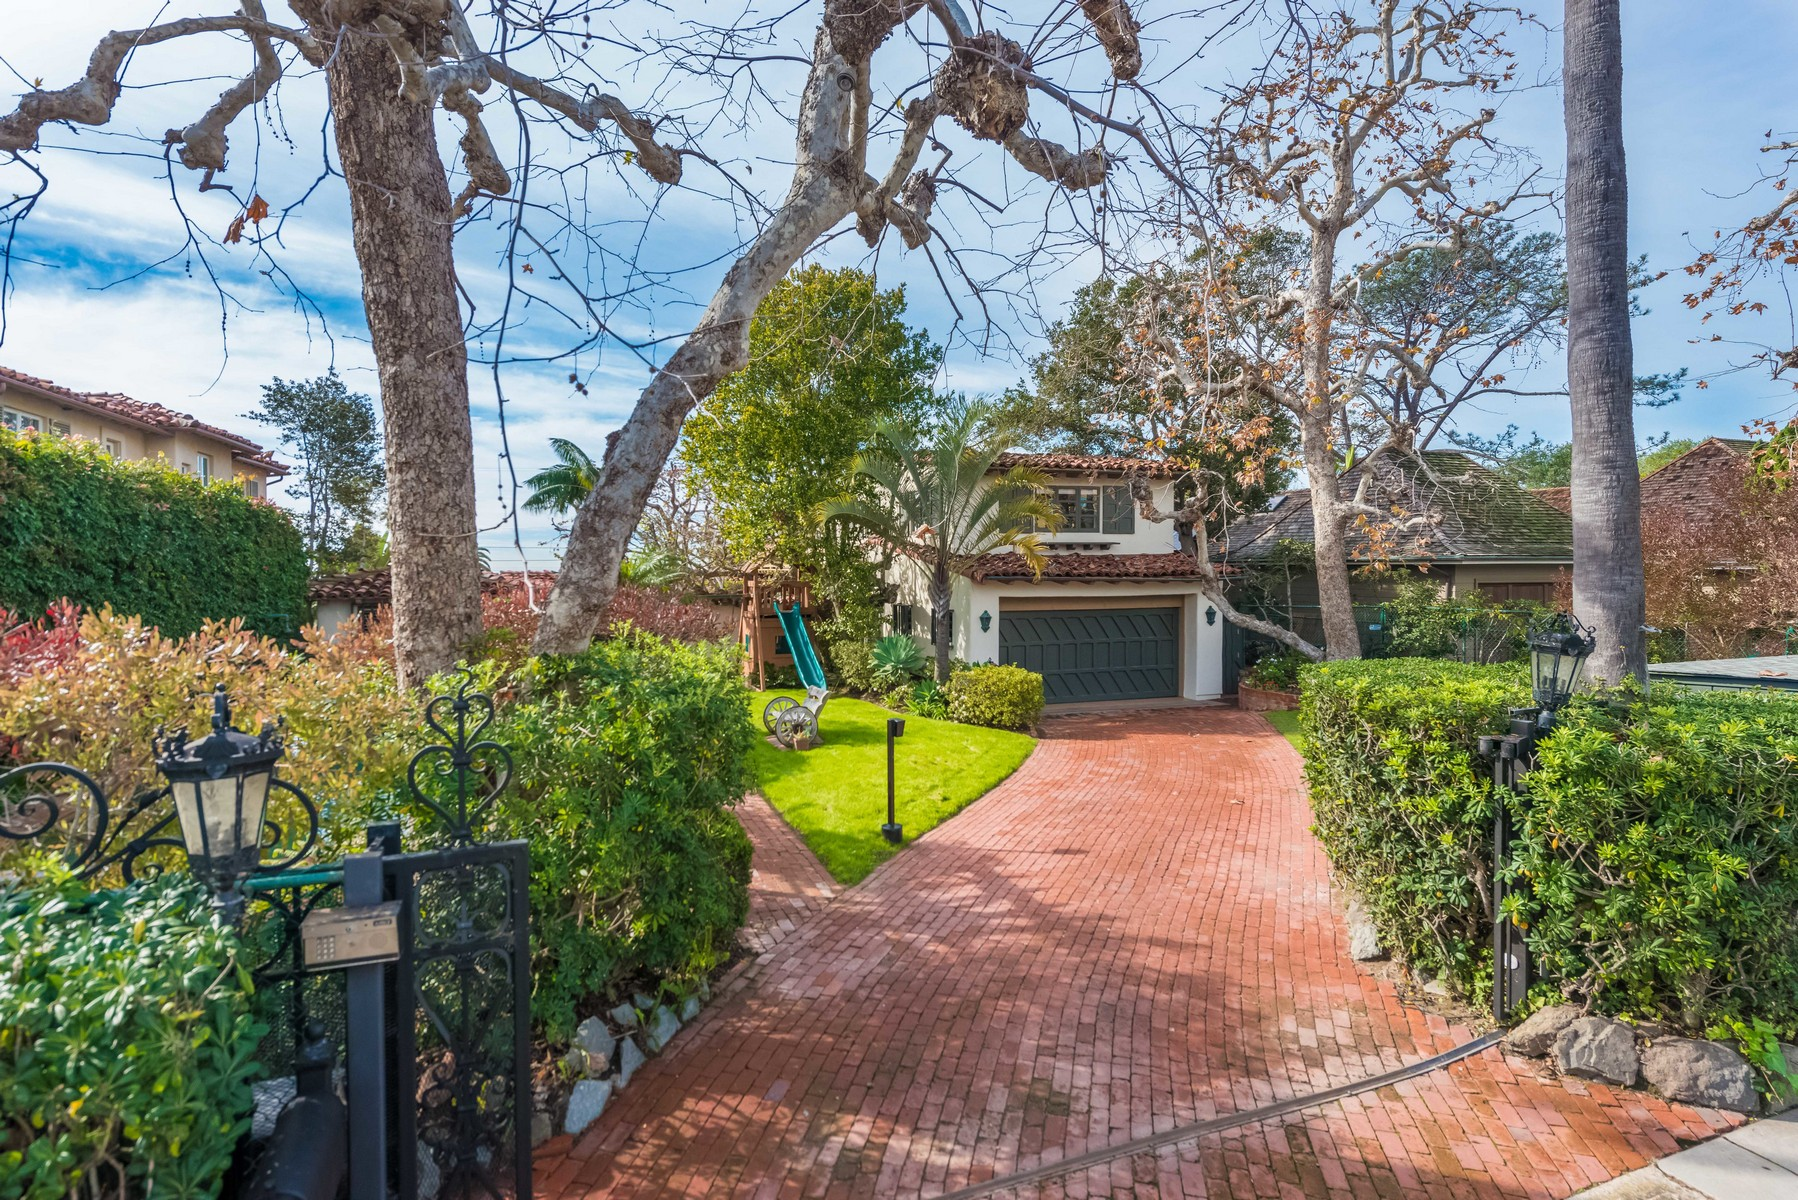 Single Family Home for Sale at 6116 Avenida Cresta La Jolla, California, 92037 United States